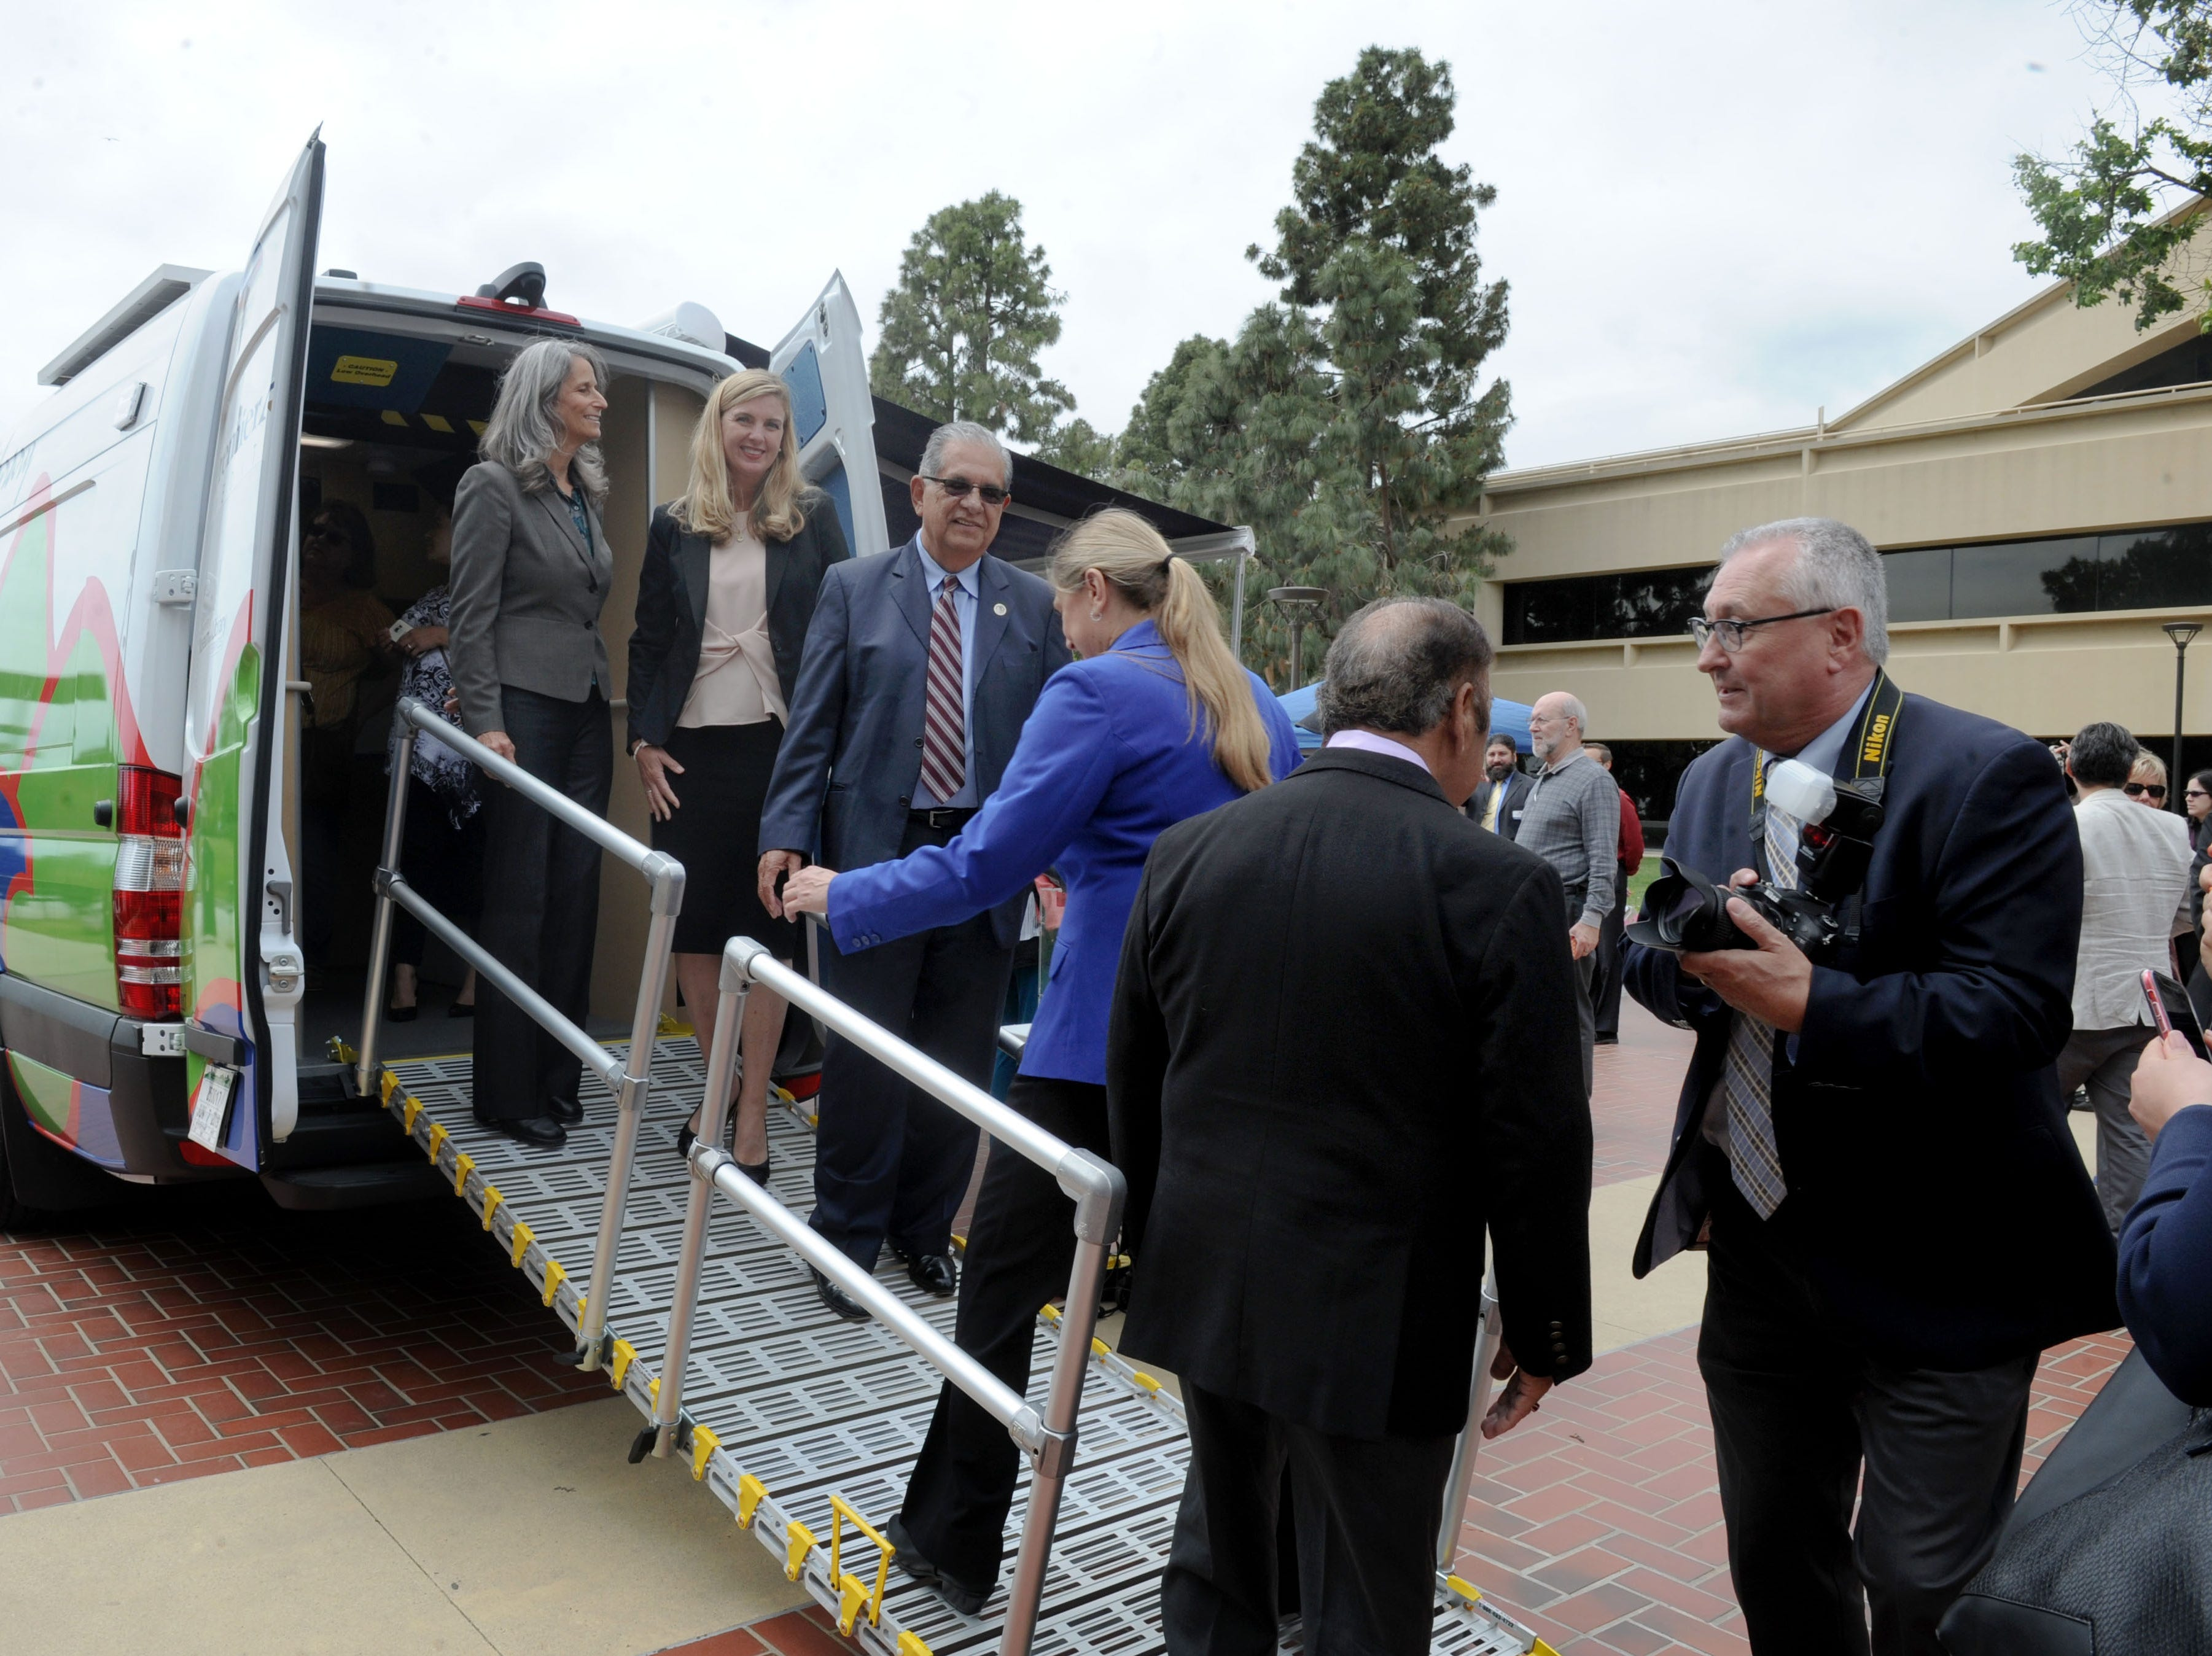 County supervisors and others tour the Ventura County library system's new mobile library at the Ventura County Government Center on Tuesday.  The nonprofit Ventura County Library Foundation, in partnership with the library system, invited the community to attend the launch and ribbon-cutting event Tuesday for the new mobile library.